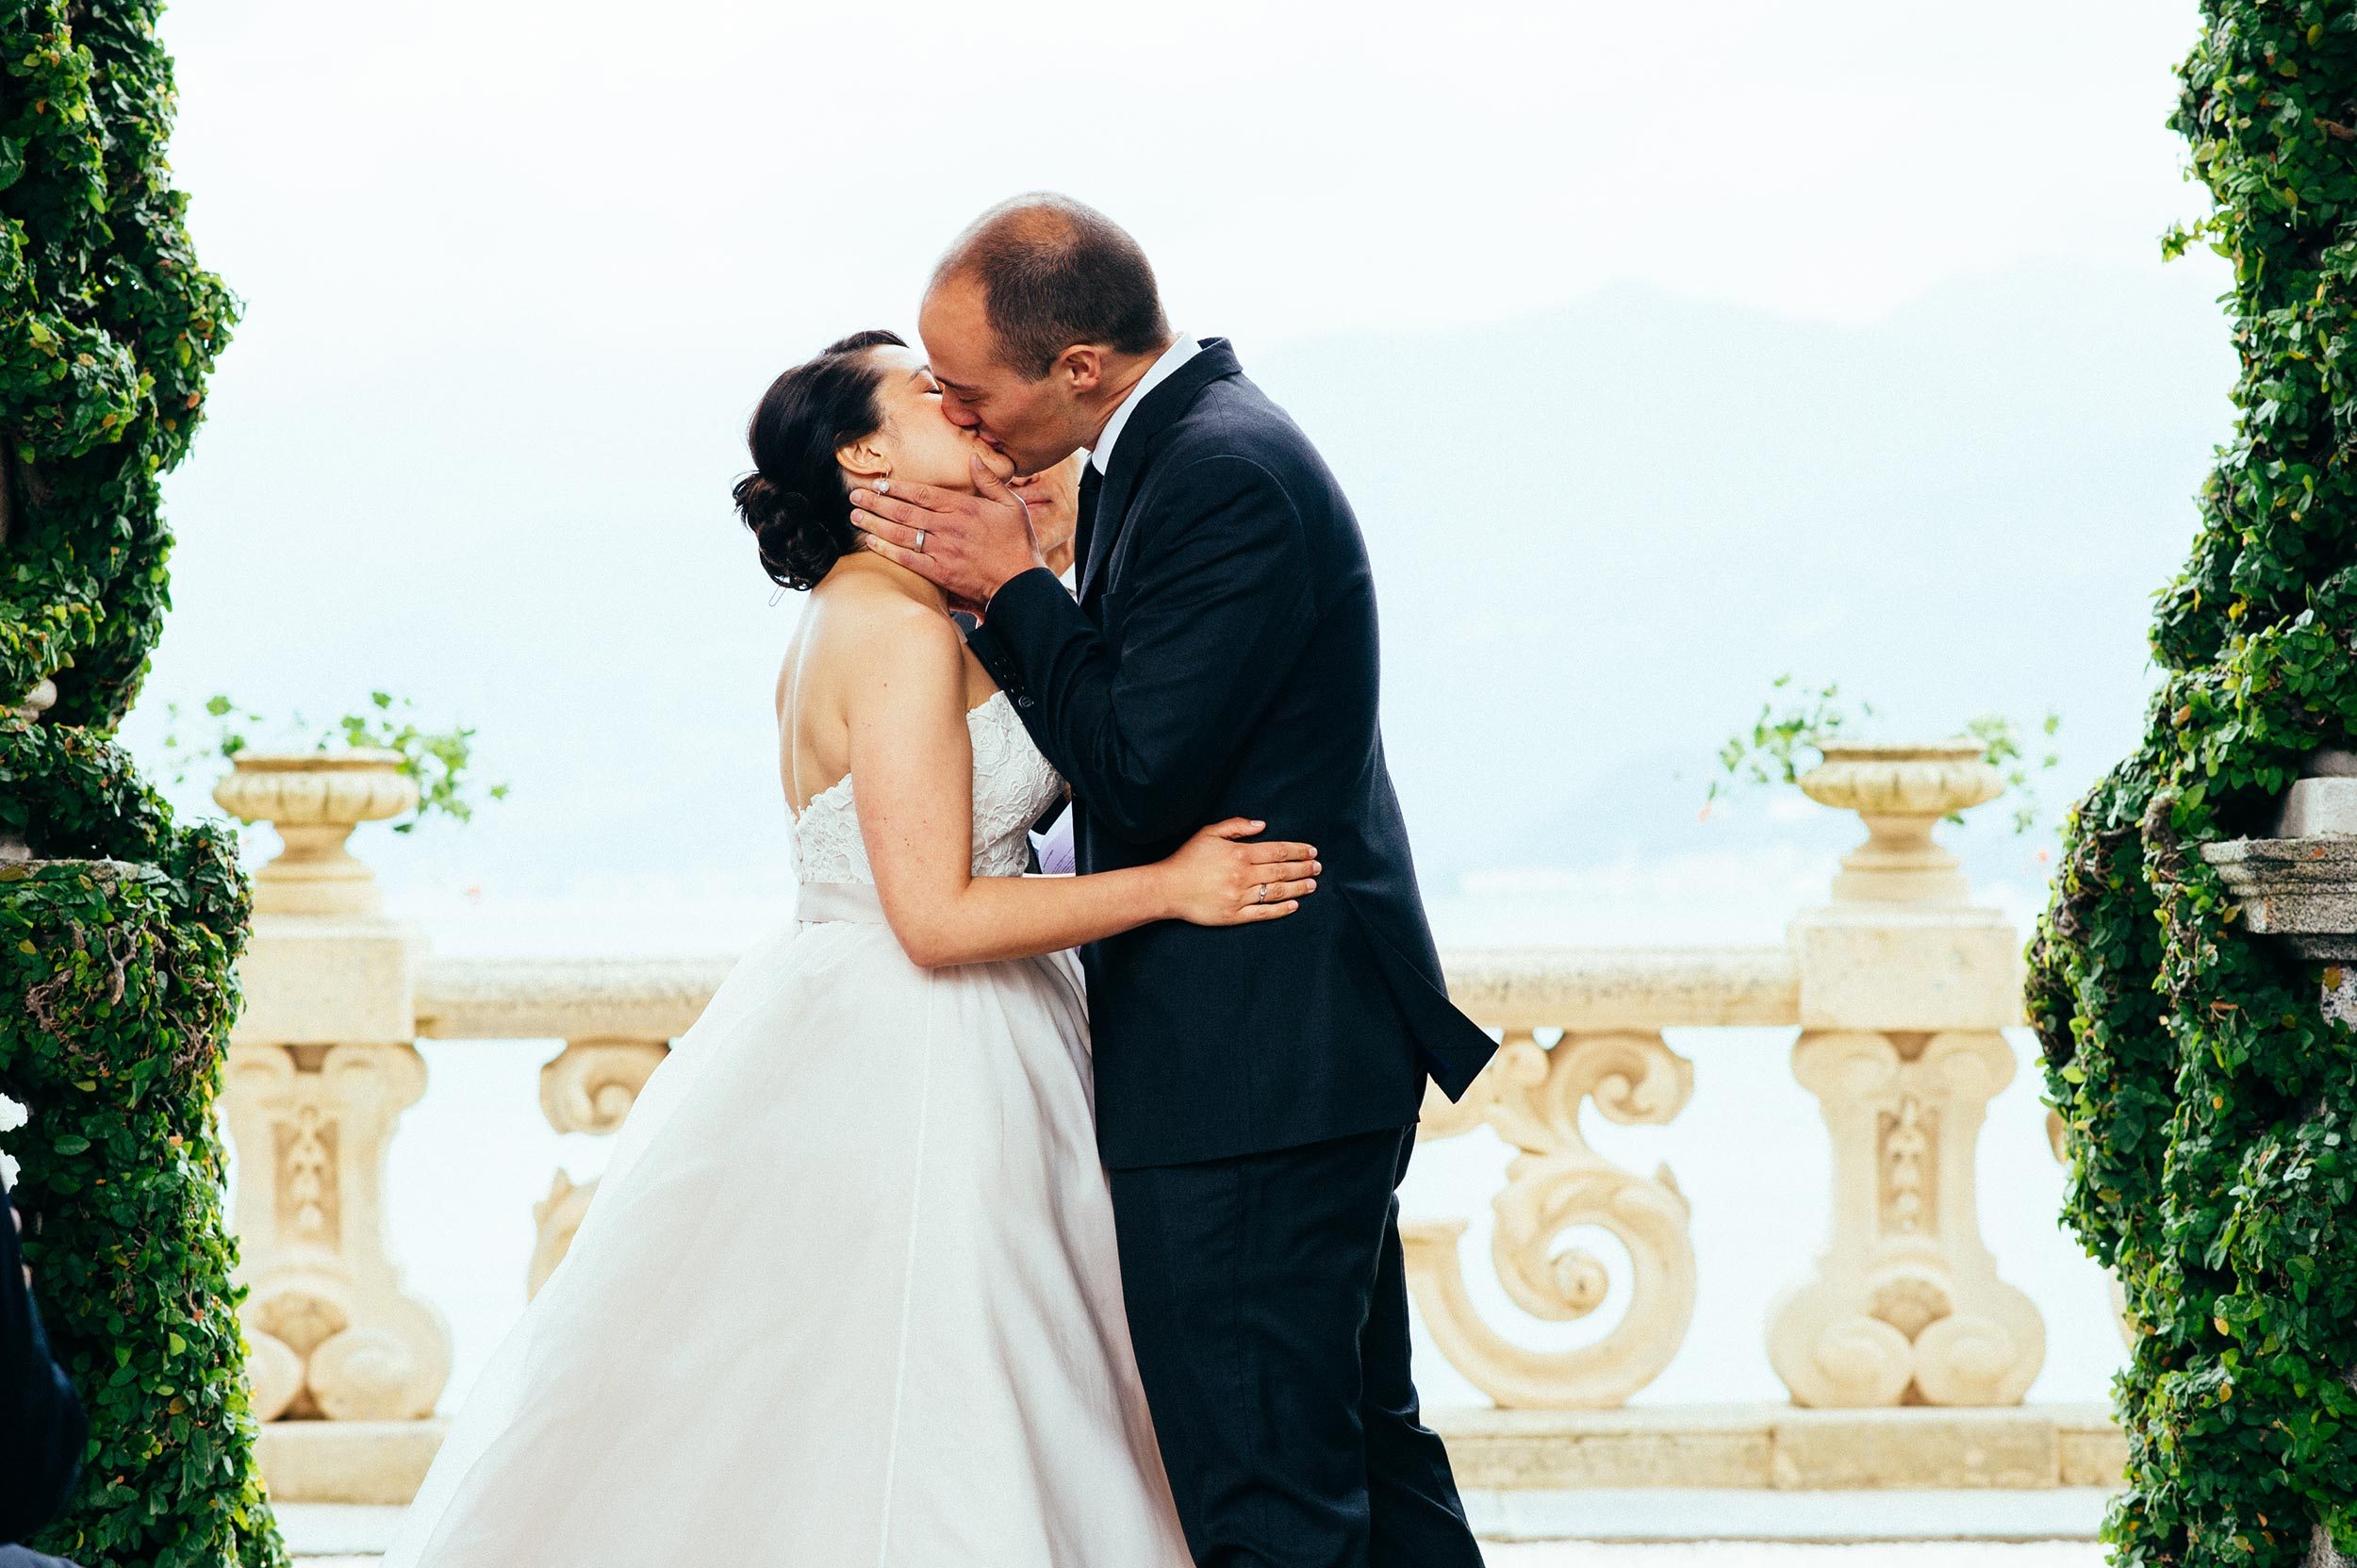 2015-Jon-Lauren-Bellagio-Lake-Como-Wedding-Photographer-Italy-Alessandro-Avenali-29.jpg